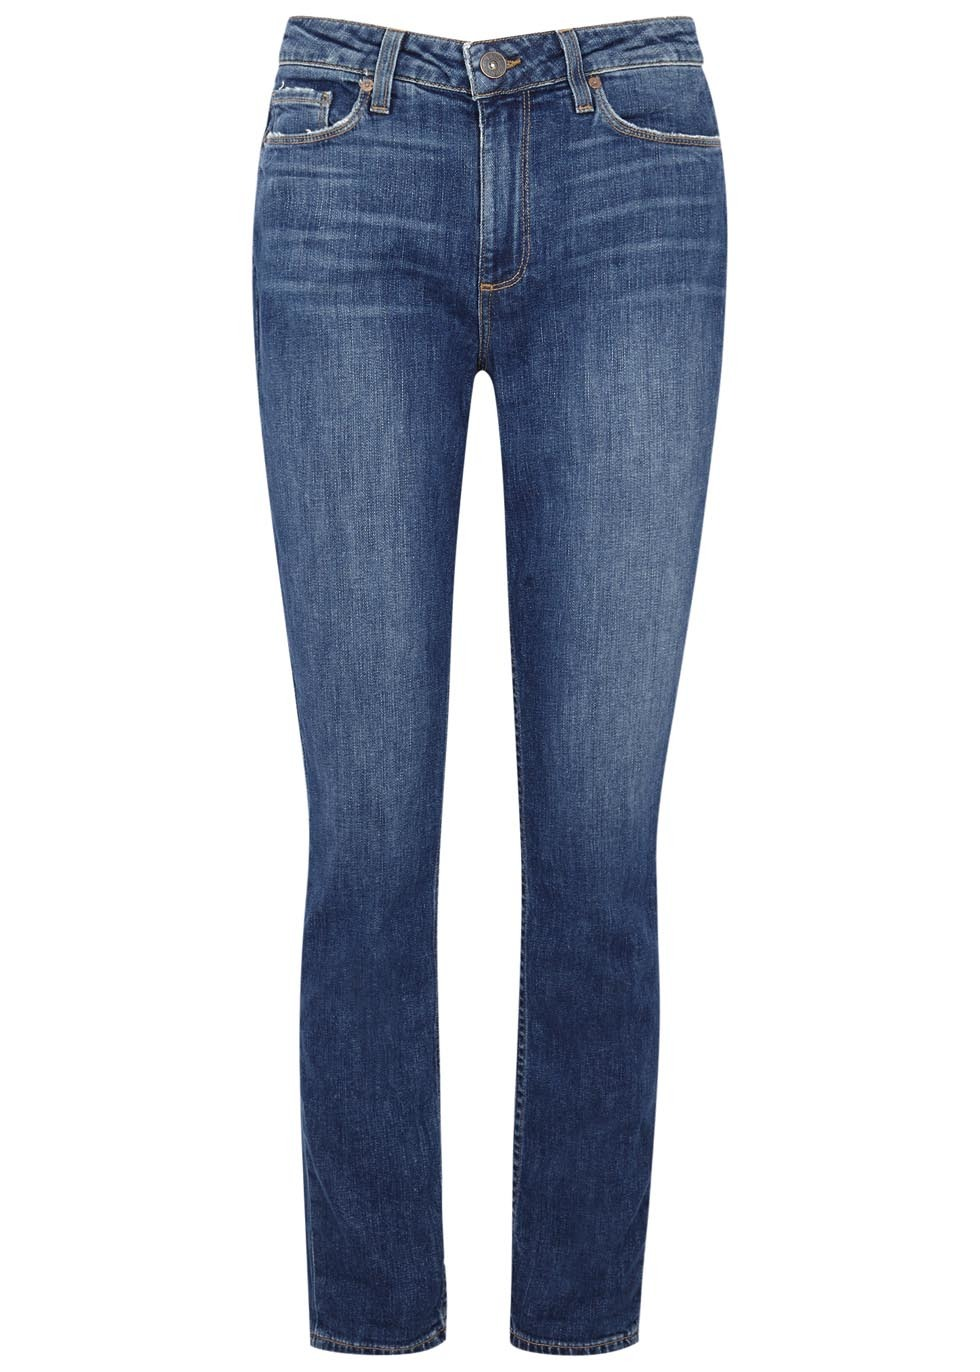 Carter Blue Slim Leg Jeans - length: standard; pattern: plain; pocket detail: traditional 5 pocket; style: slim leg; waist: mid/regular rise; predominant colour: denim; occasions: casual, evening, creative work; fibres: cotton - stretch; texture group: denim; pattern type: fabric; wardrobe: basic; season: a/w 2016